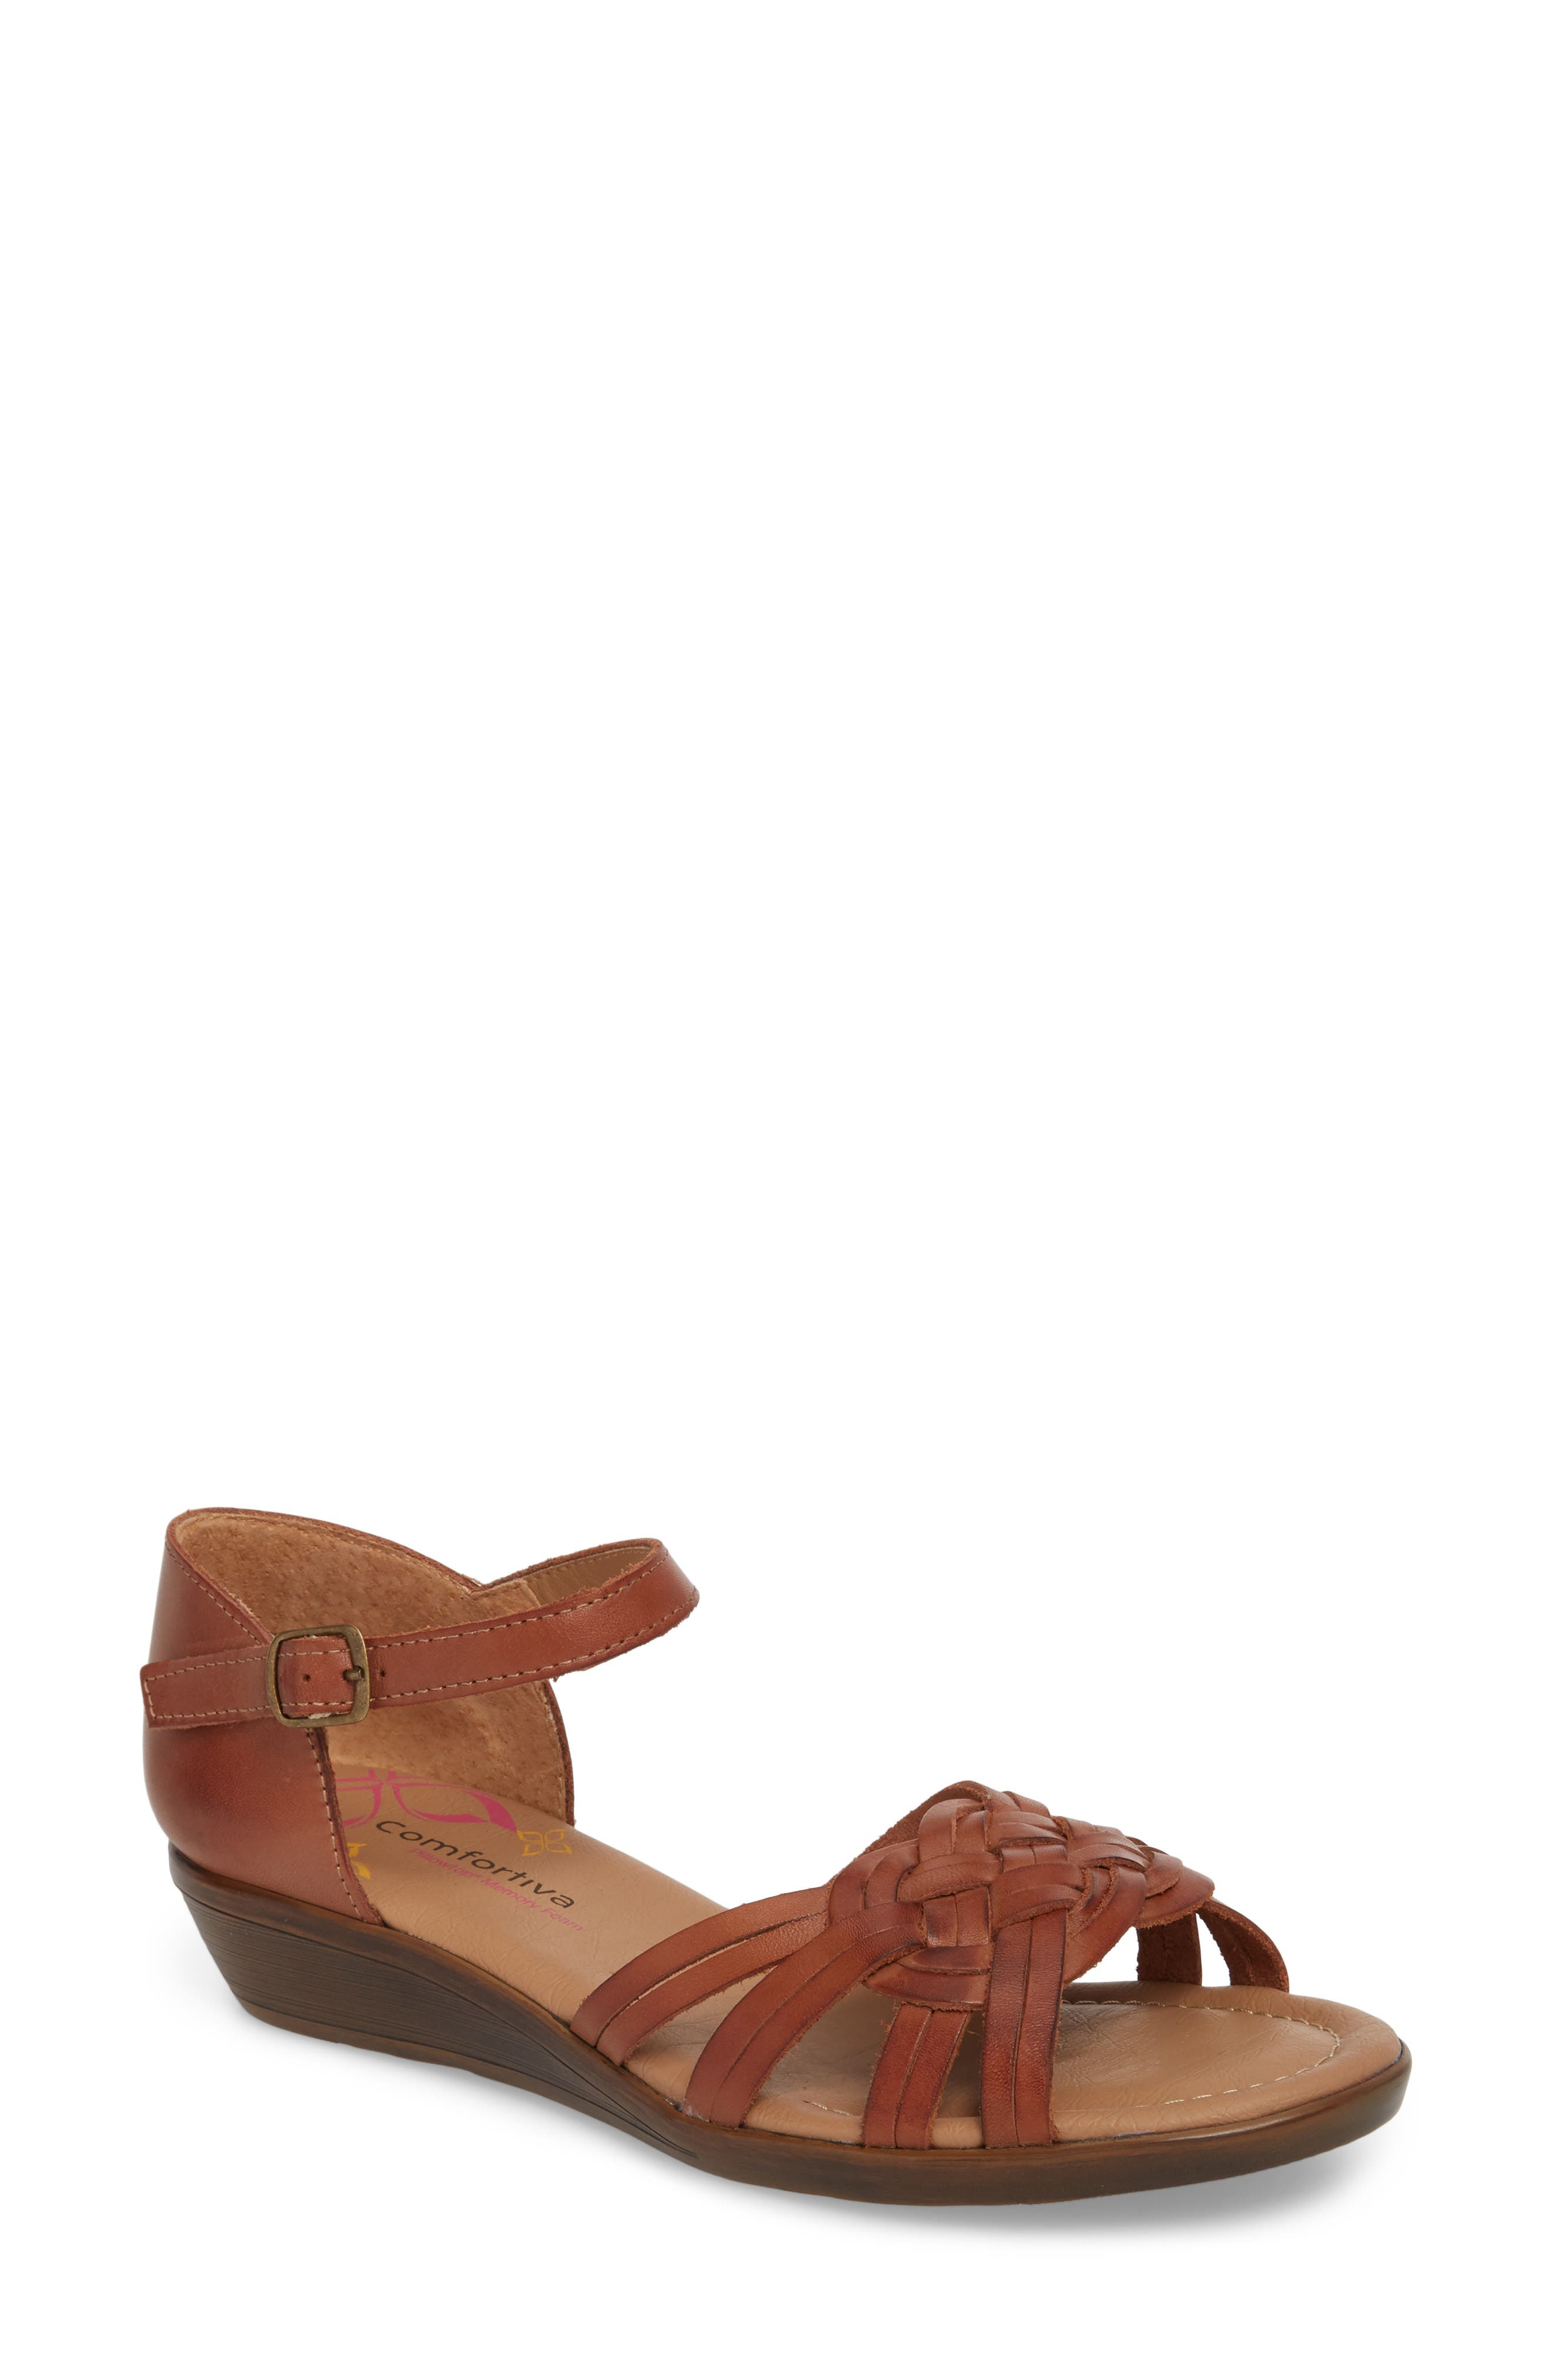 Fortune Sandal,                             Main thumbnail 1, color,                             Rust Leather